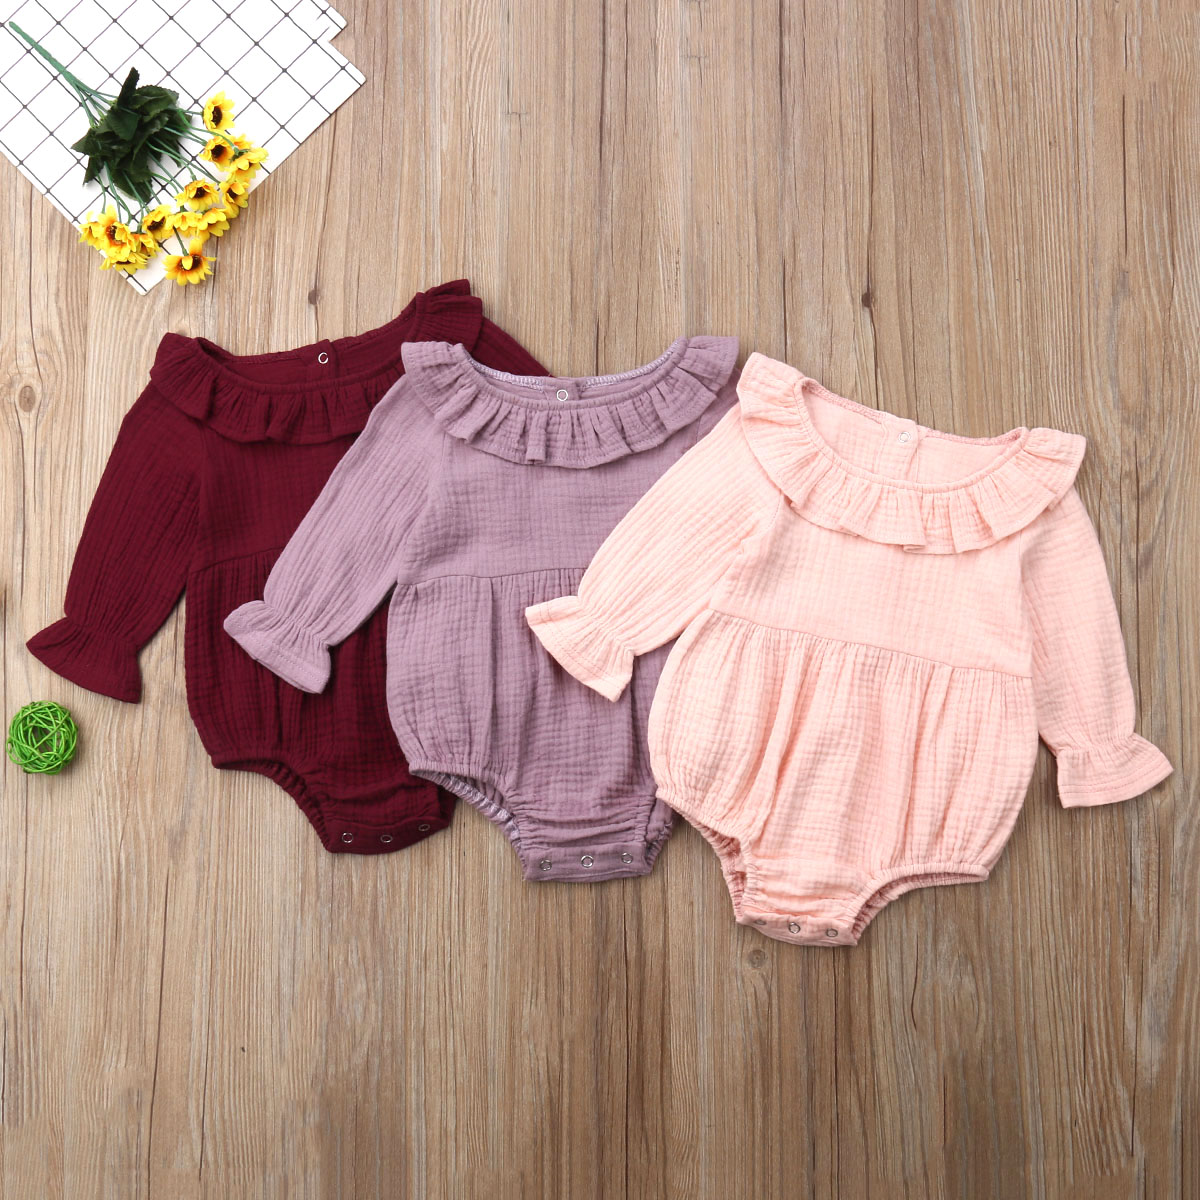 Cute Newborn Baby Girl Long Sleeve Ruffle Collar Solid   Romper   High Waist Jumpsuit Outfit Clothes Sunsuit